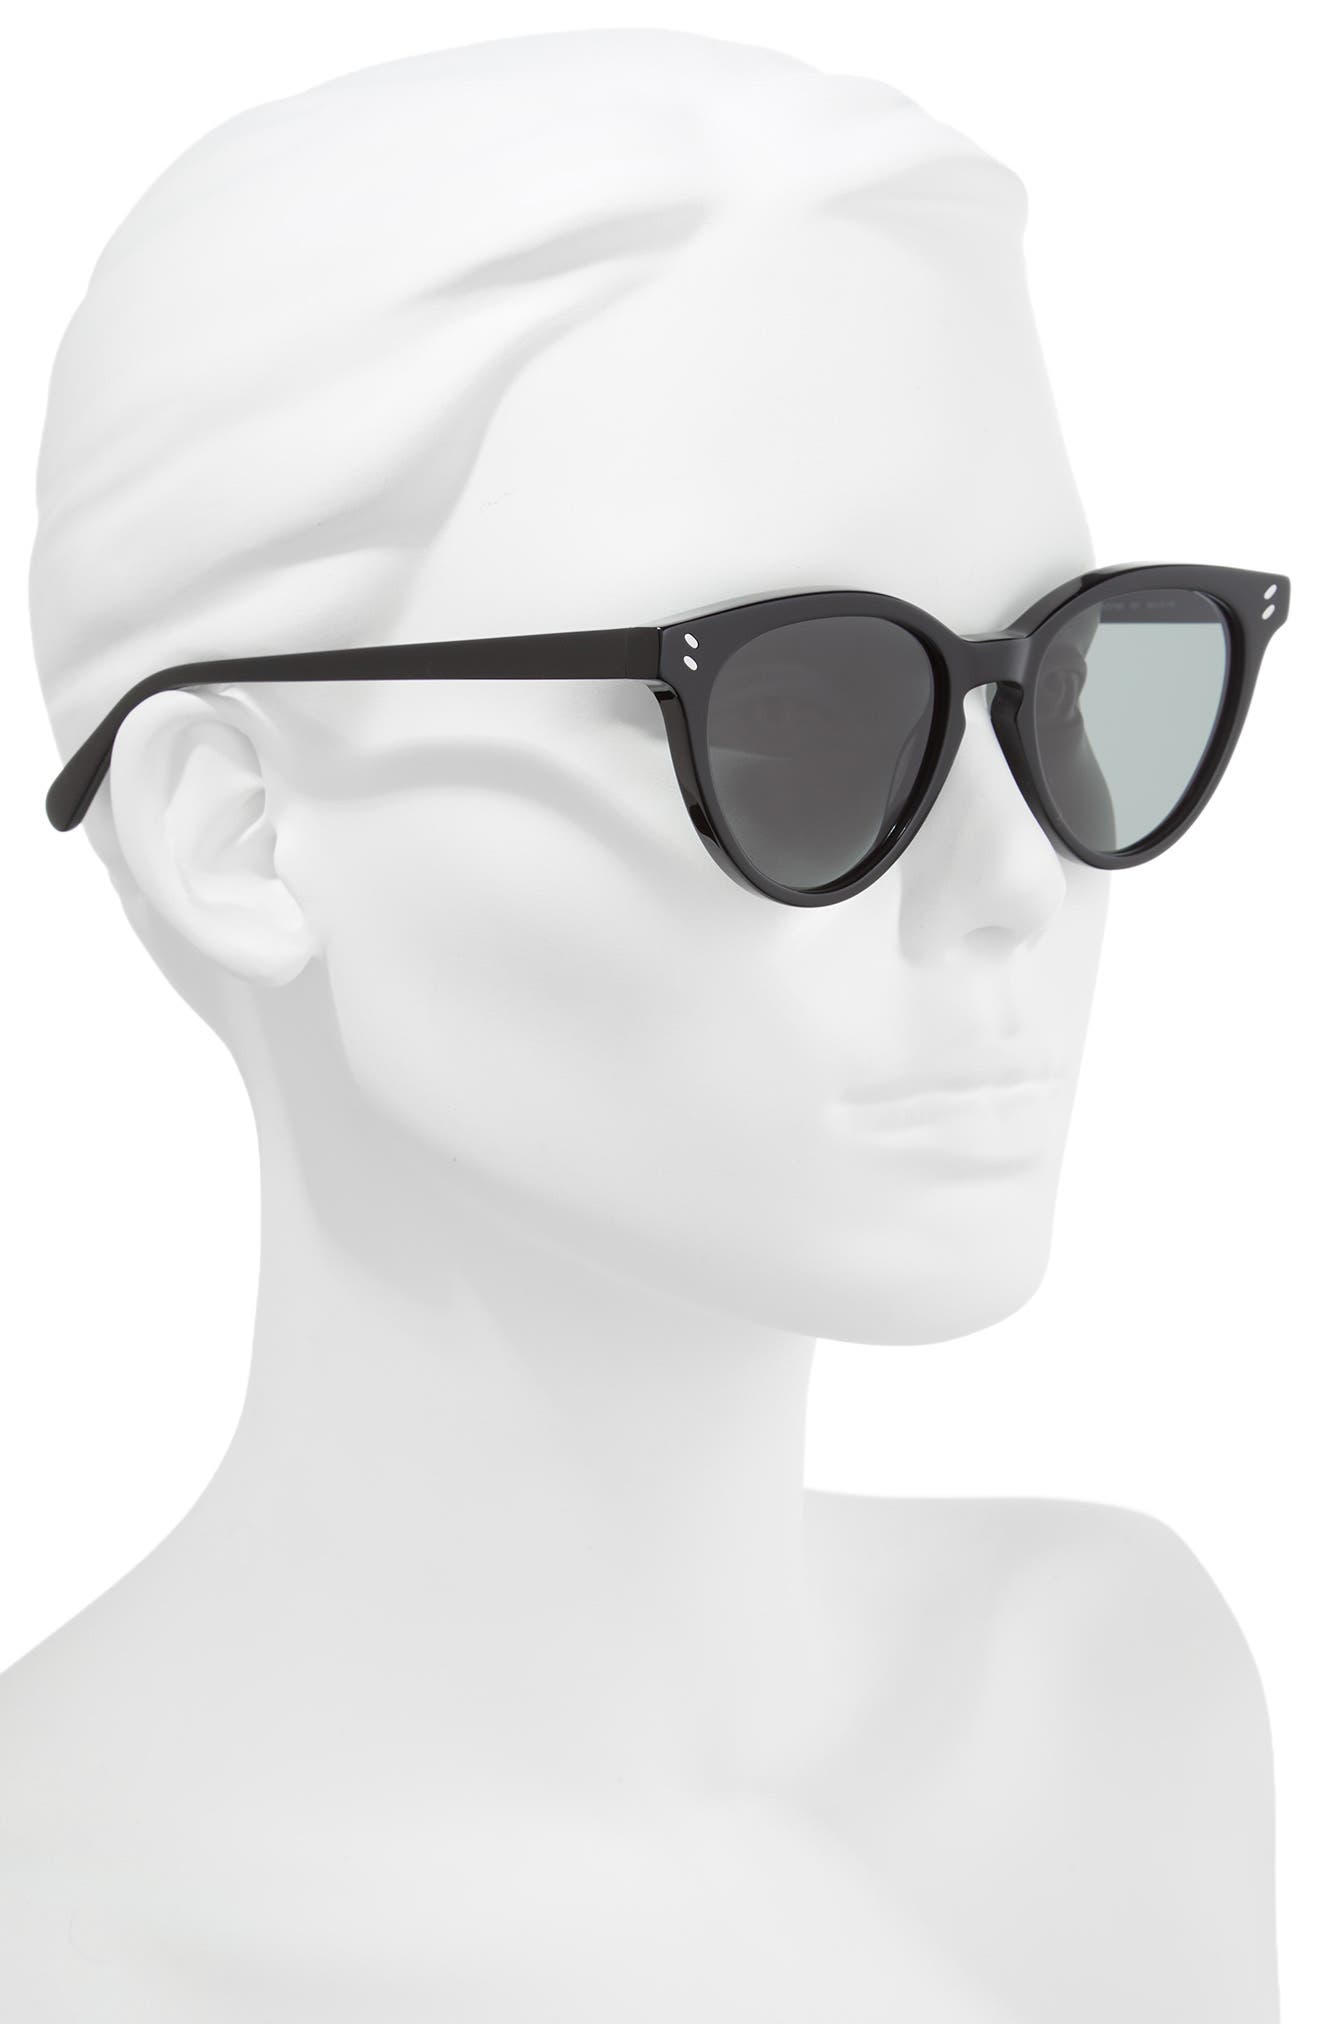 50mm Round Sunglasses,                             Alternate thumbnail 2, color,                             BLACK